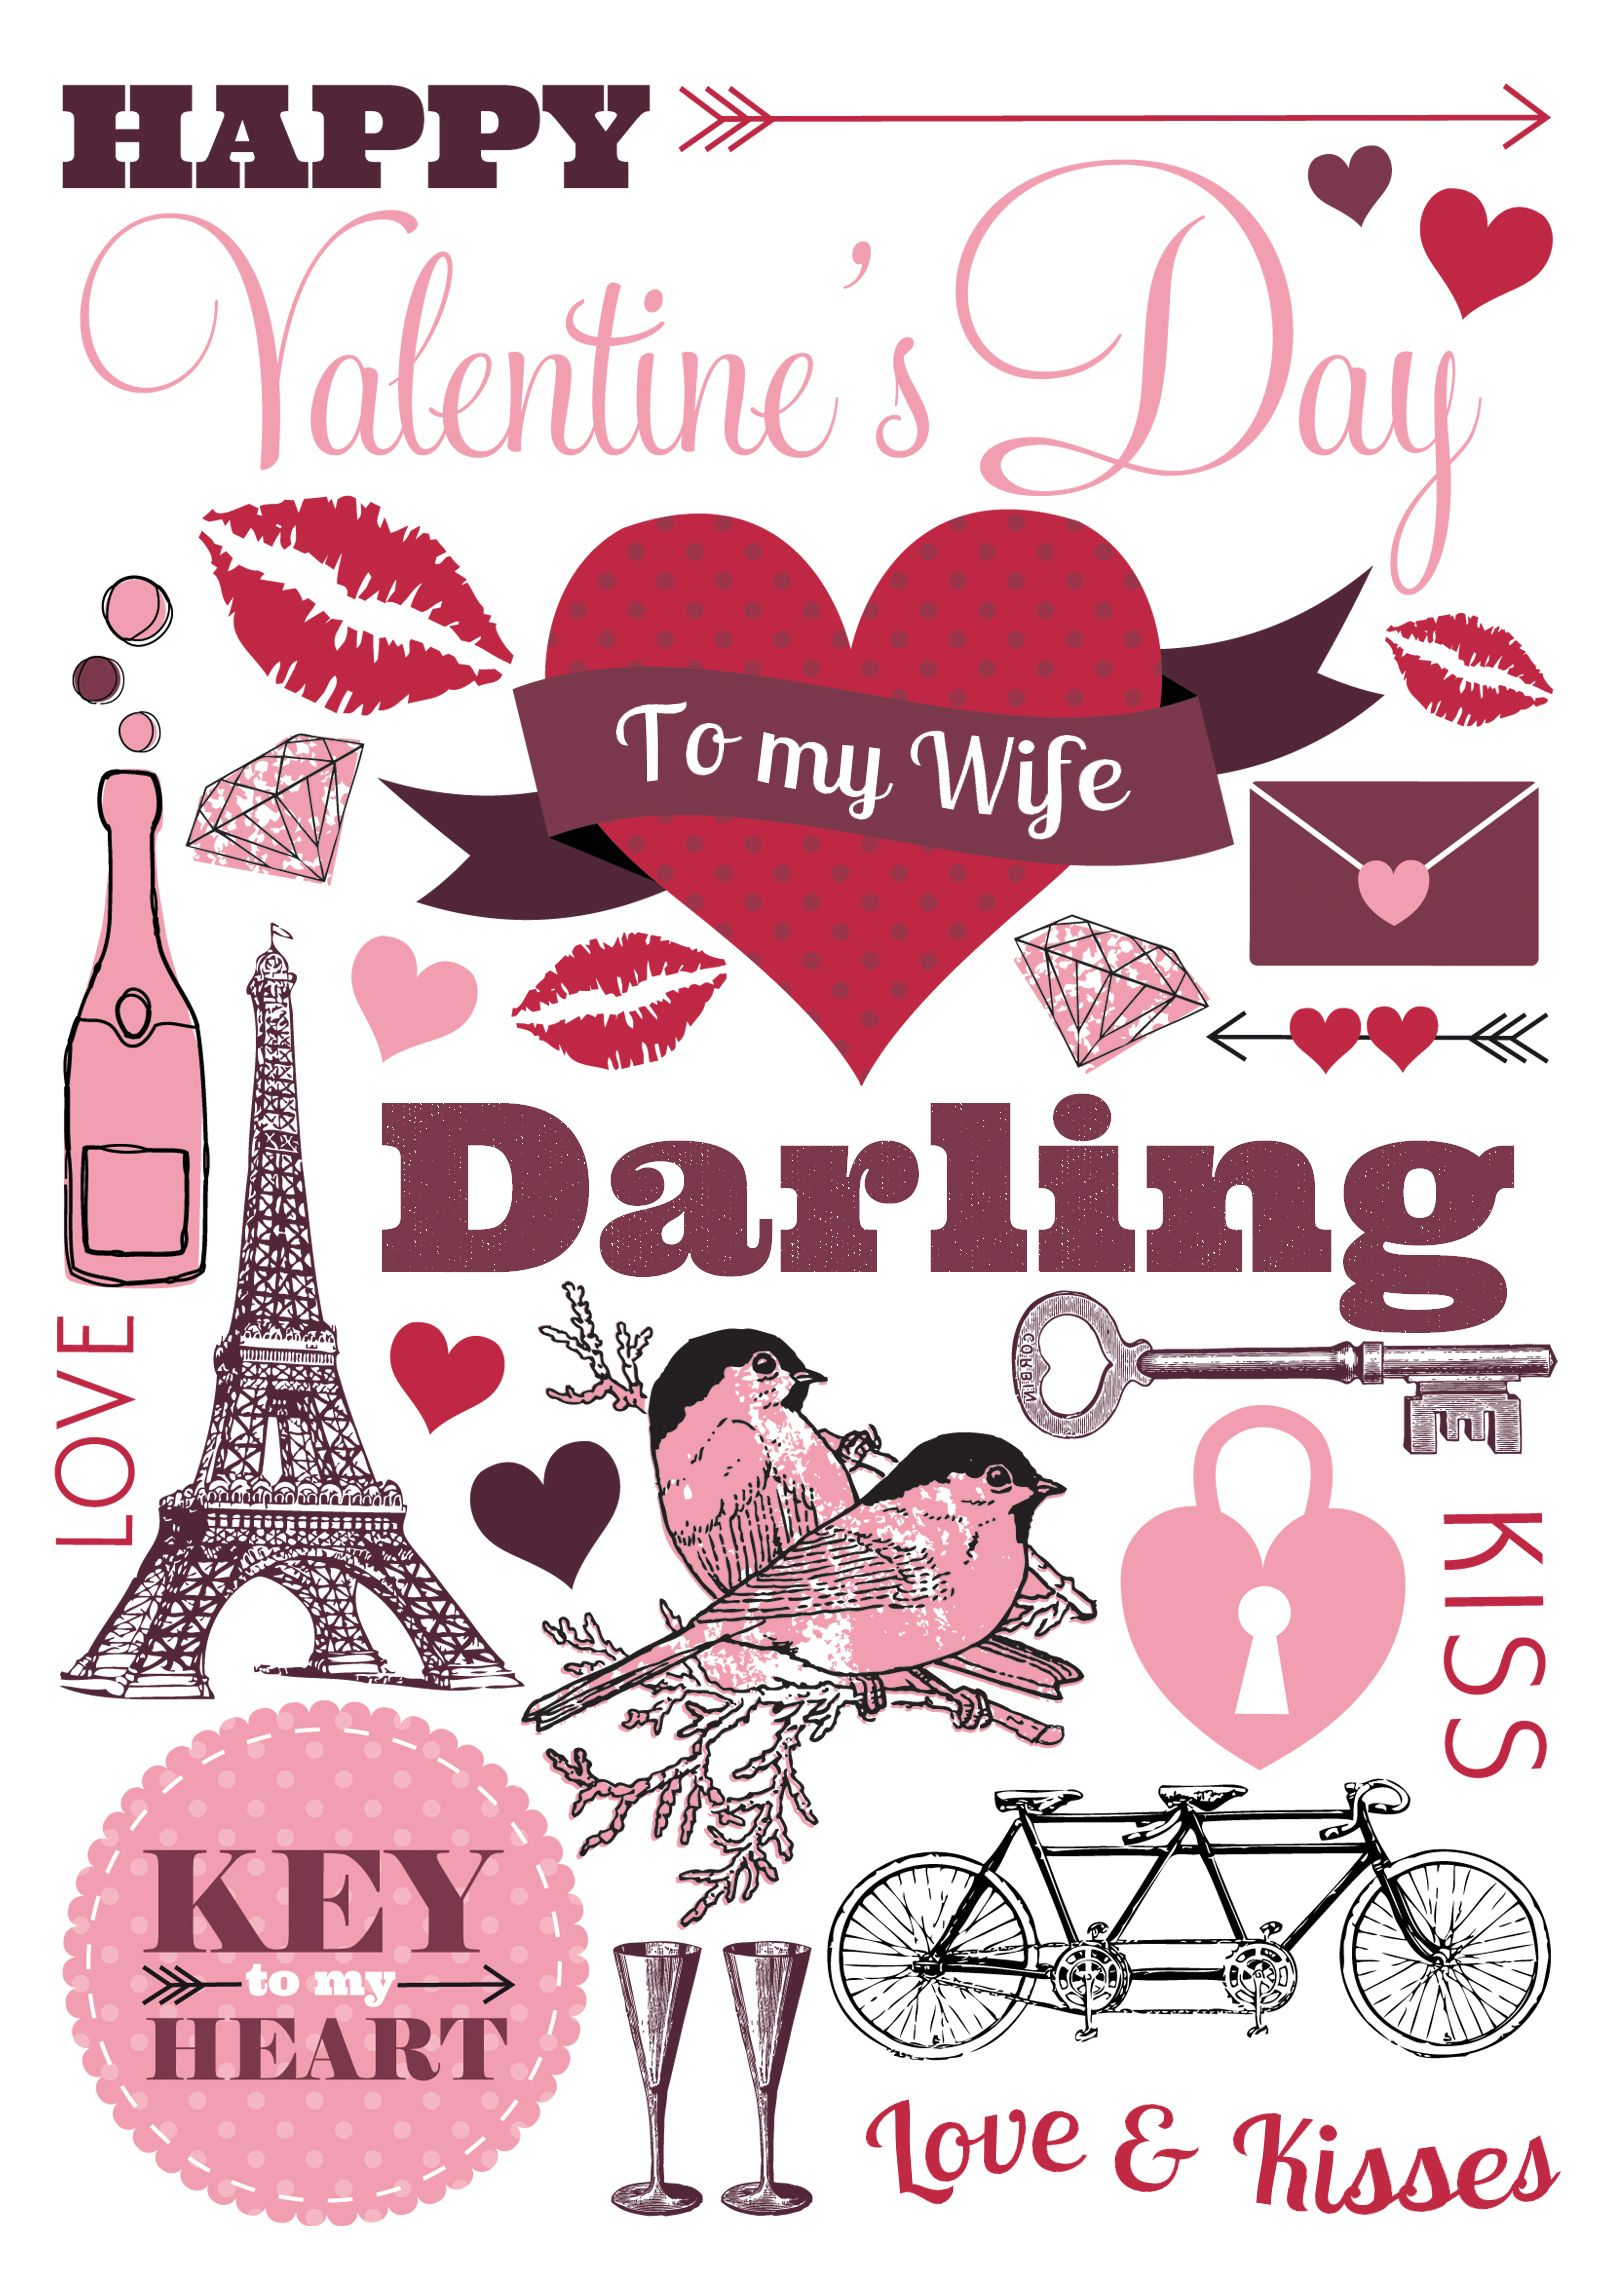 A Darling Wife Valentines Card Be Our Valentine Pinterest